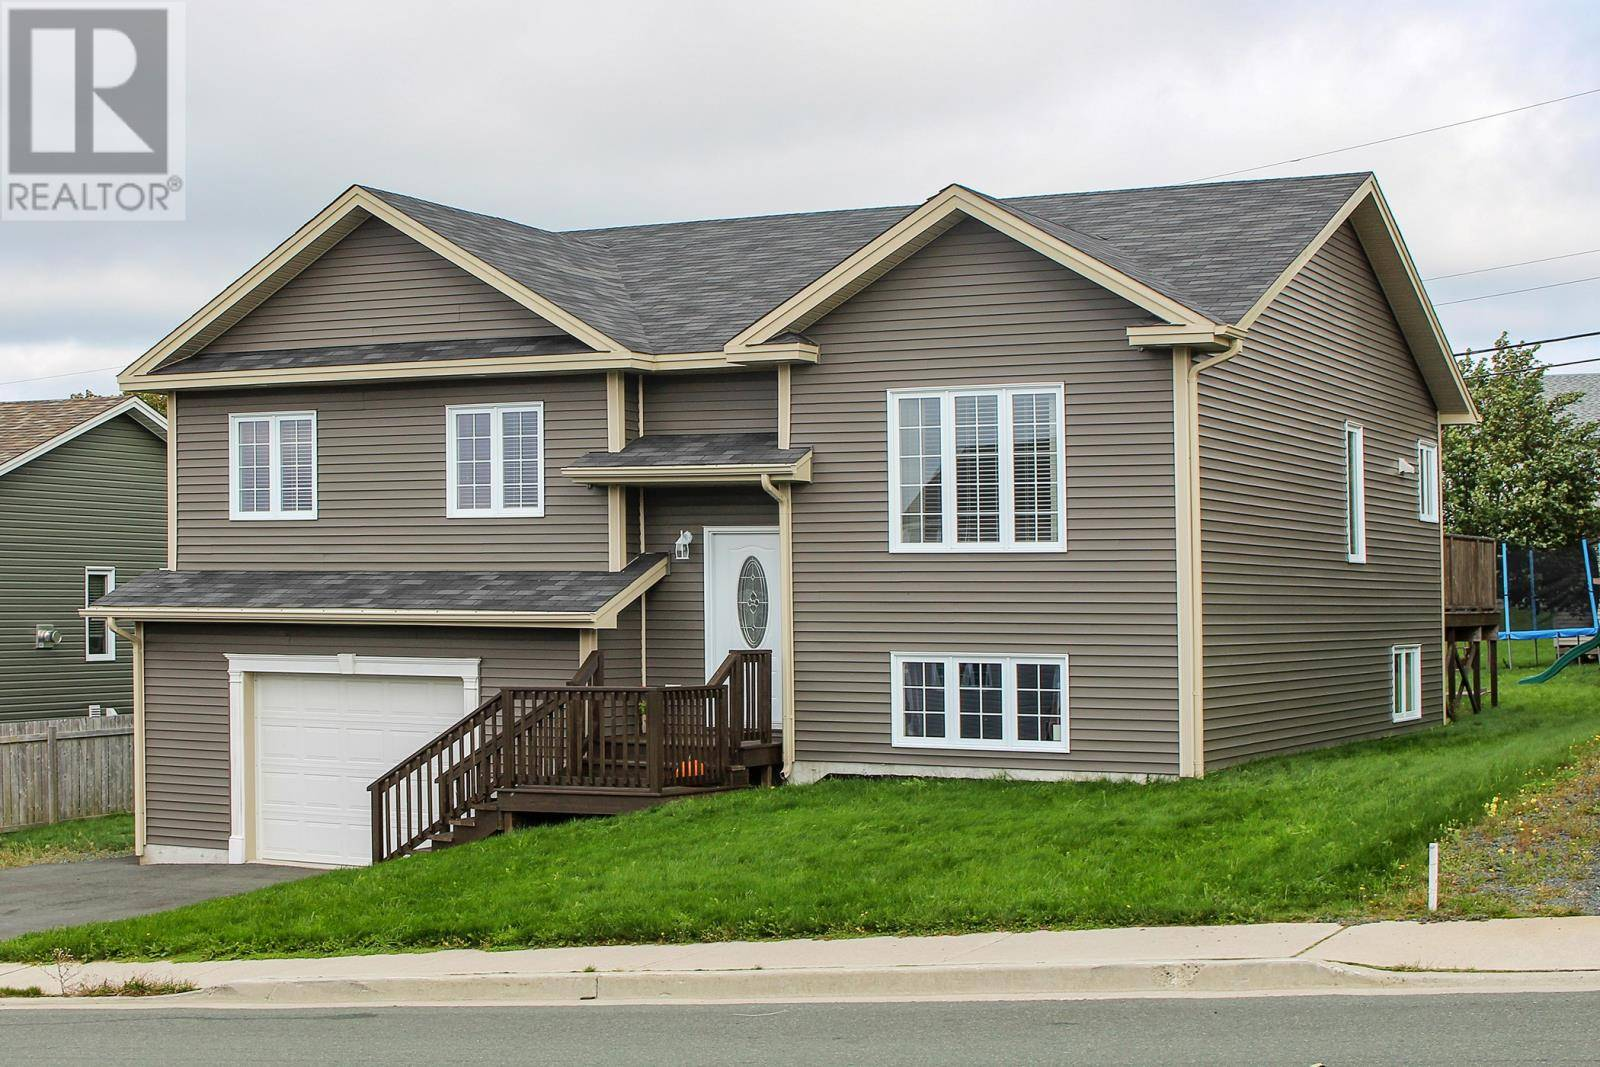 House for sale at 37 Cape Pine St St. John's Newfoundland - MLS: 1199189